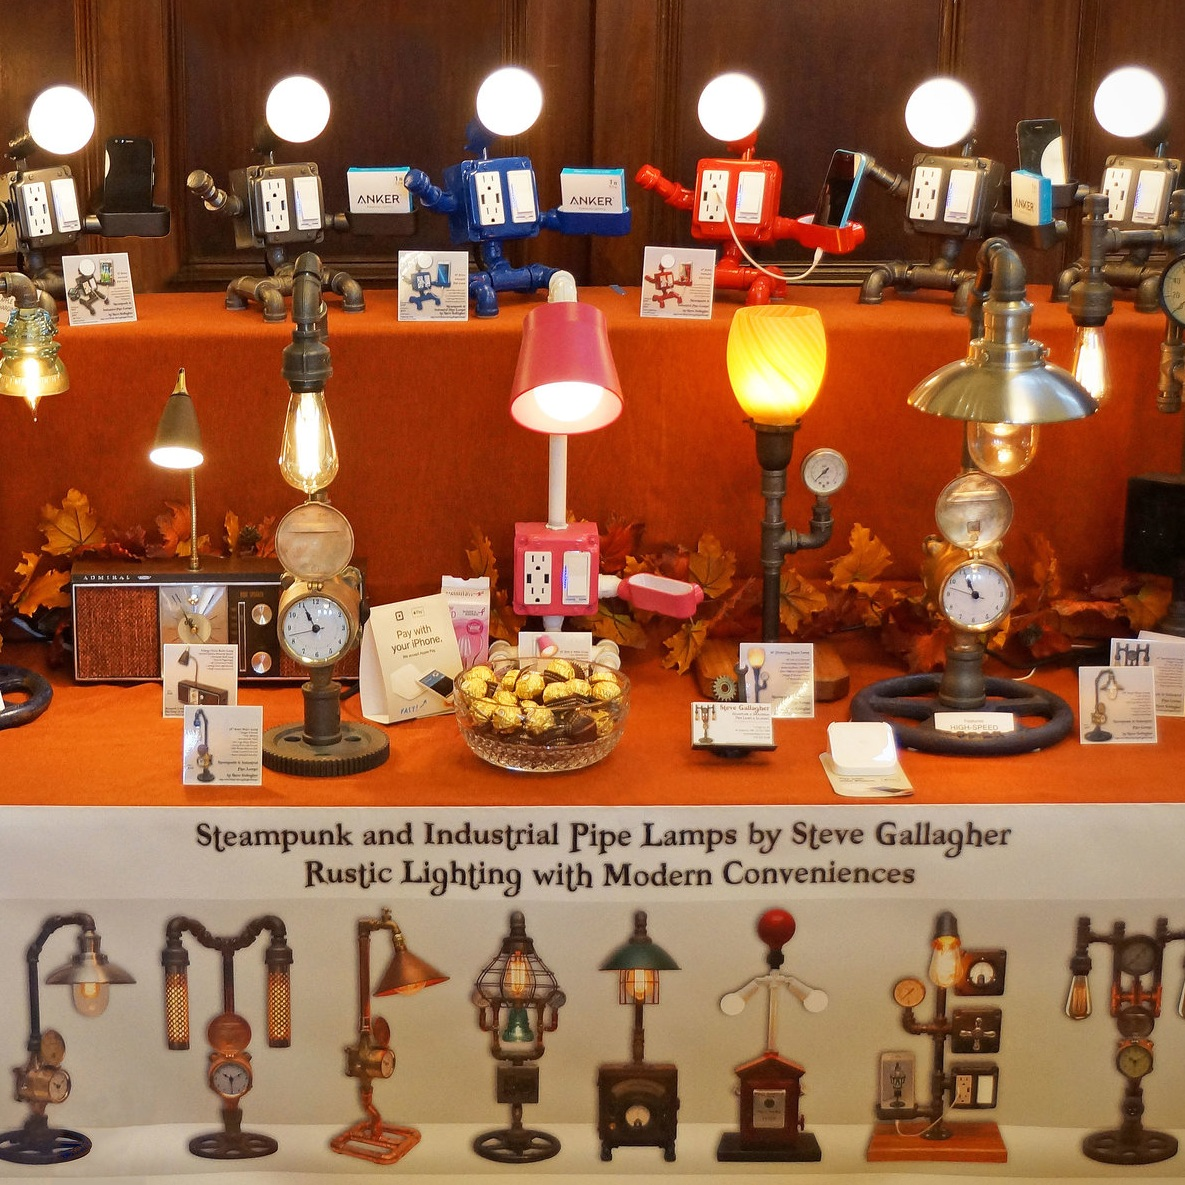 Steve Gallagher's Steampunk & Industrial Pipe Lamps